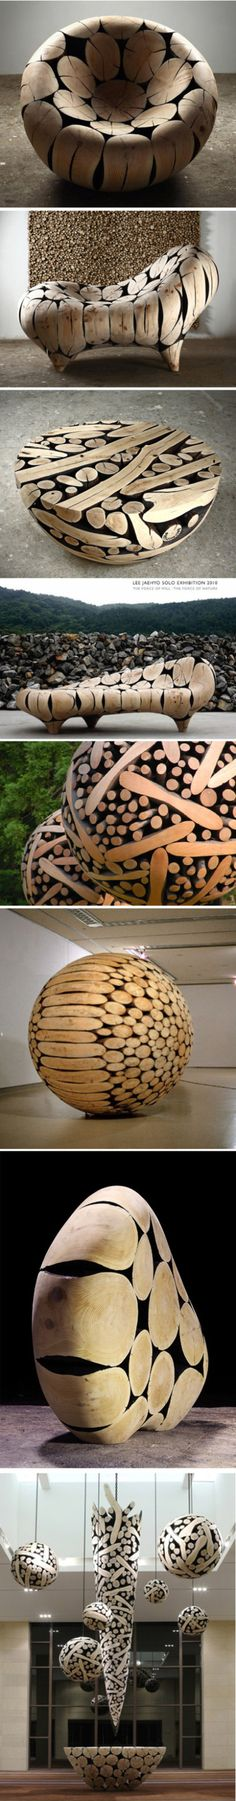 Korean artist Lee Hyo (Jaehyo Lee 1965-) sculptures.  Roundwood production, both natural feel, while strengthening the simple geometric beauty.